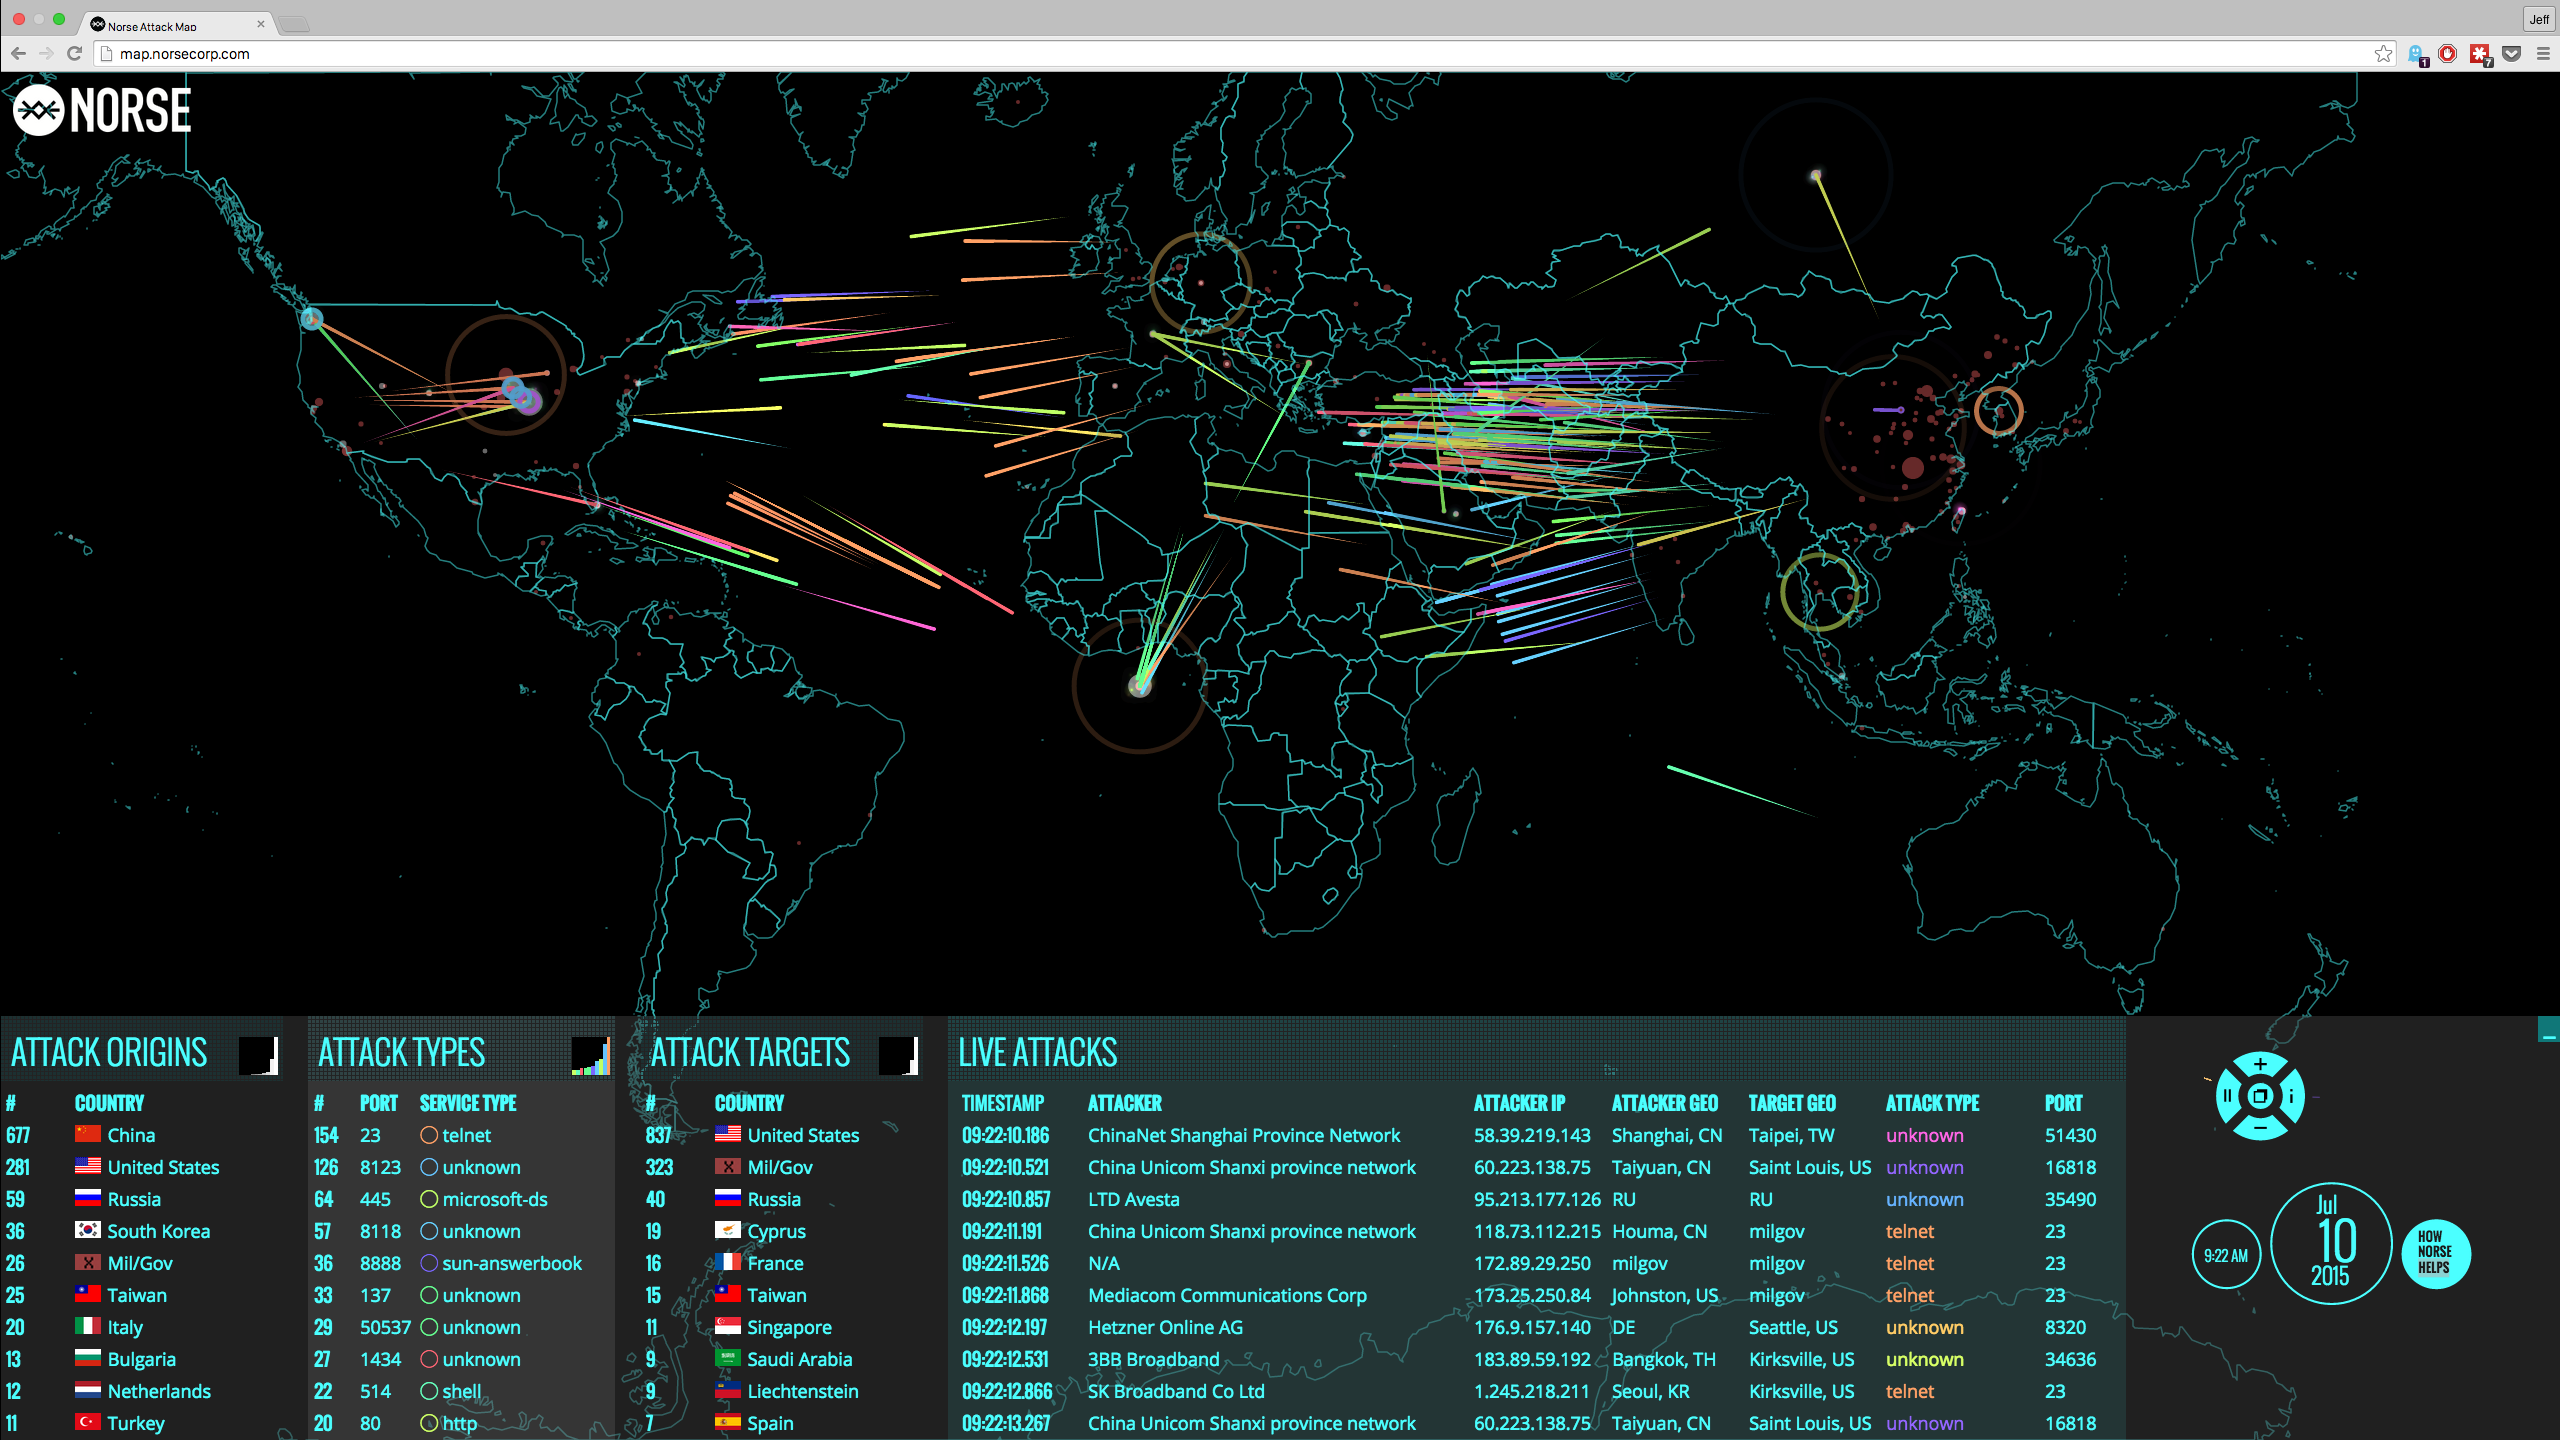 Norse Corporation produces a real-time map of worldwide cyber attacks, which calculates hundreds per minute.]